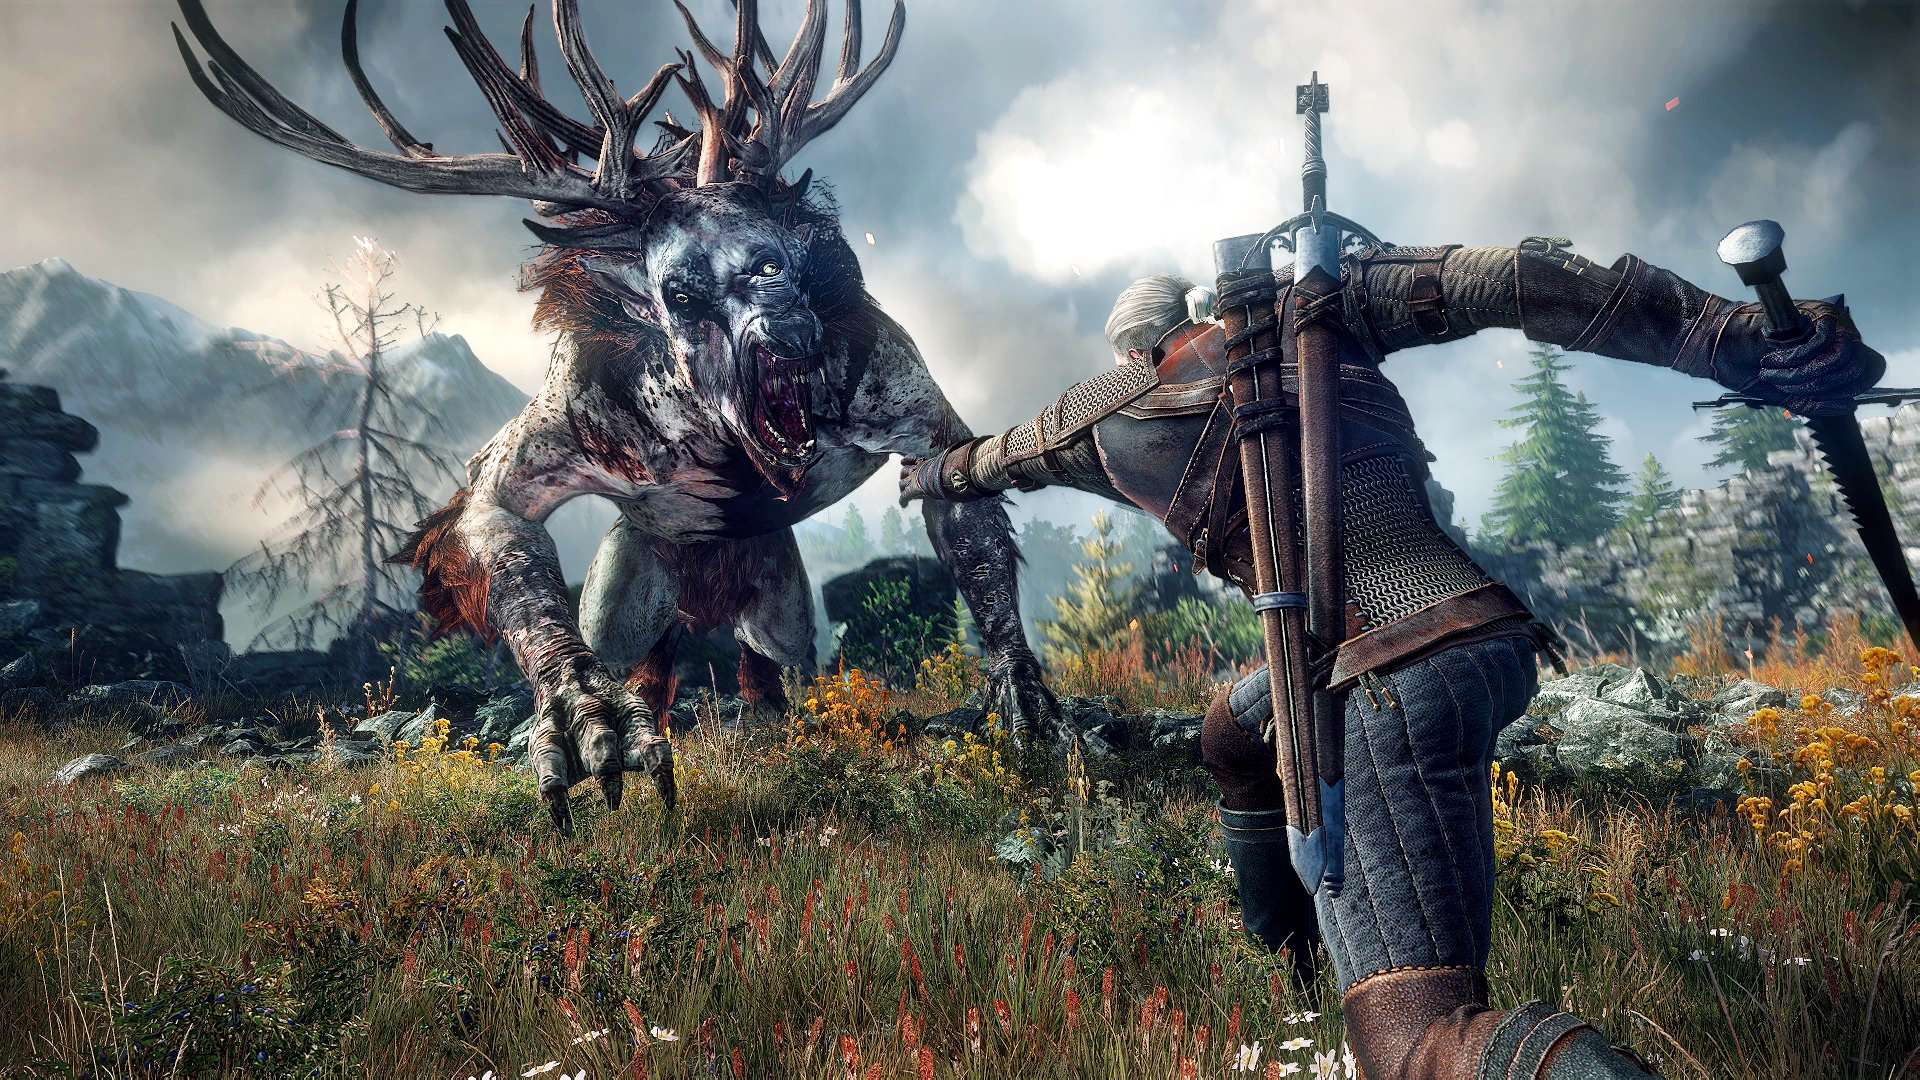 witcher3 Here Are The 2016 DICE Award Winners